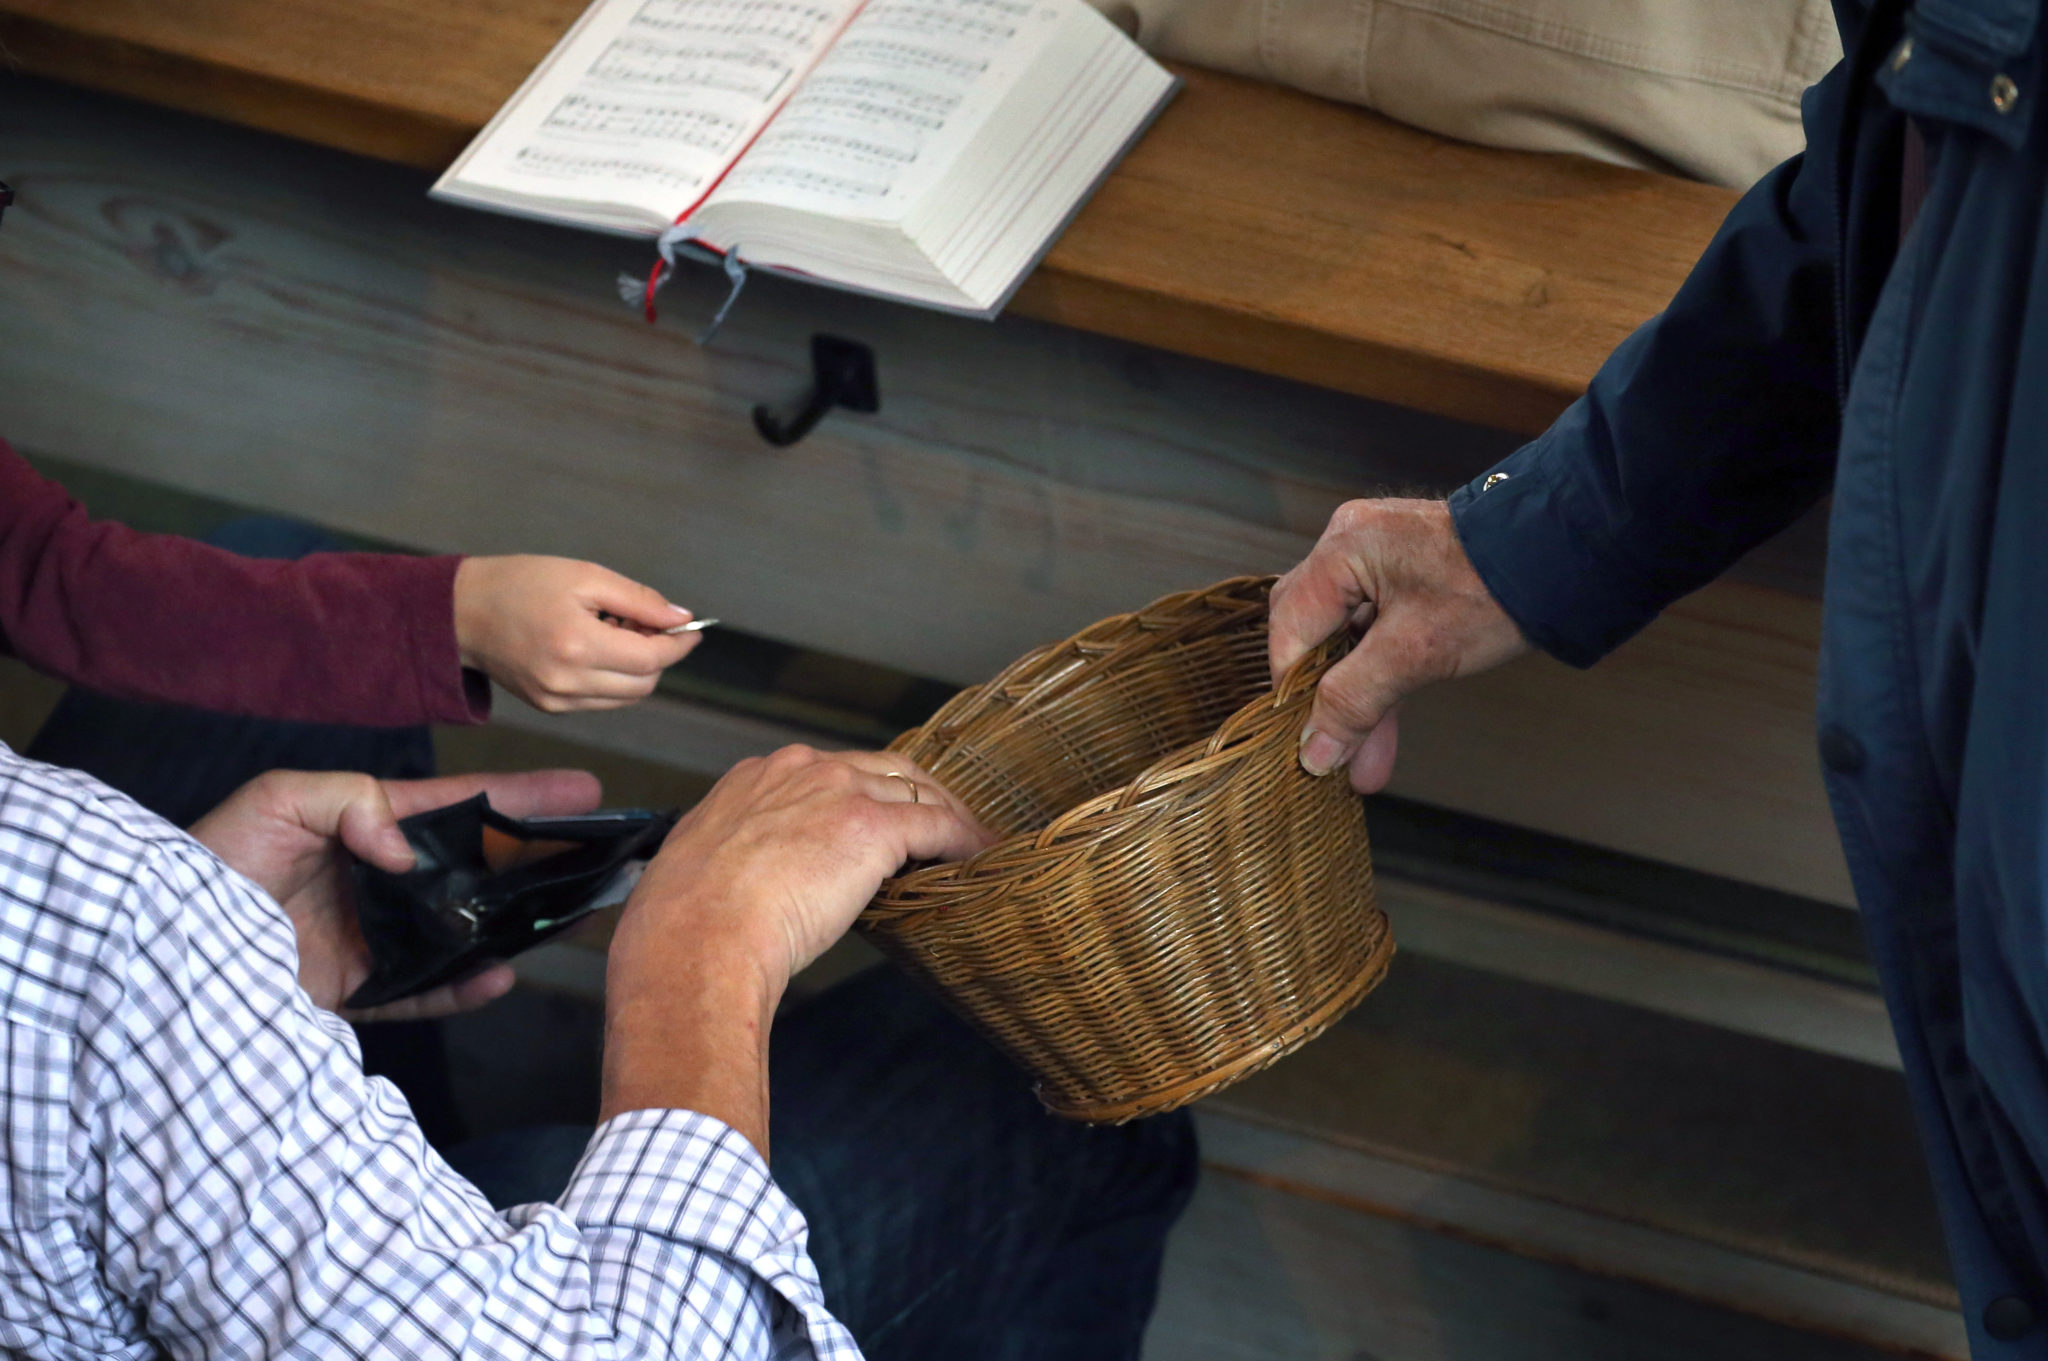 A person donates money into a basket handed around at a Catholic church service in July 2019